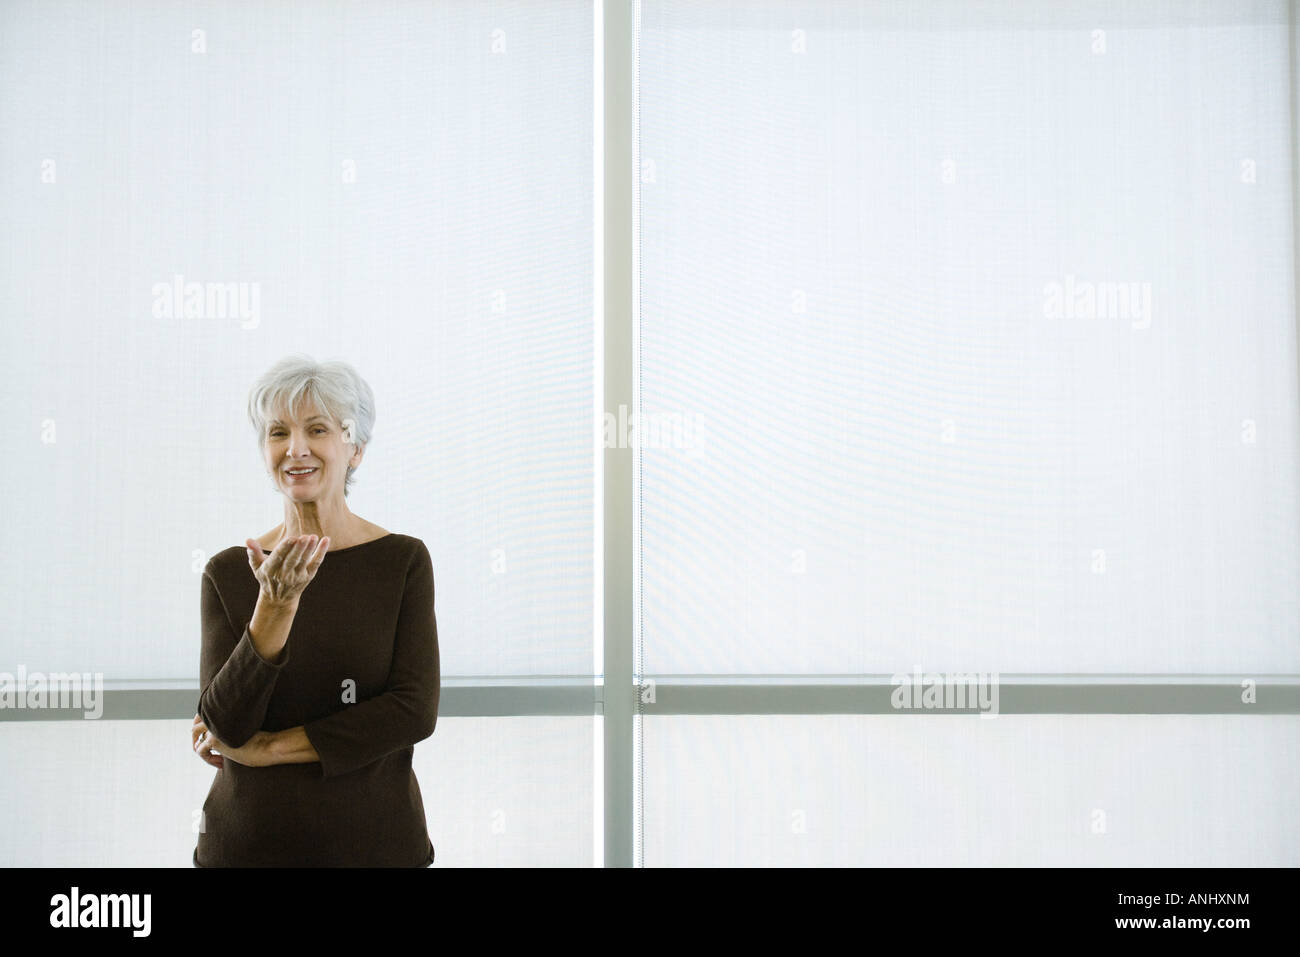 Senior woman standing with hand out, smiling at camera - Stock Image